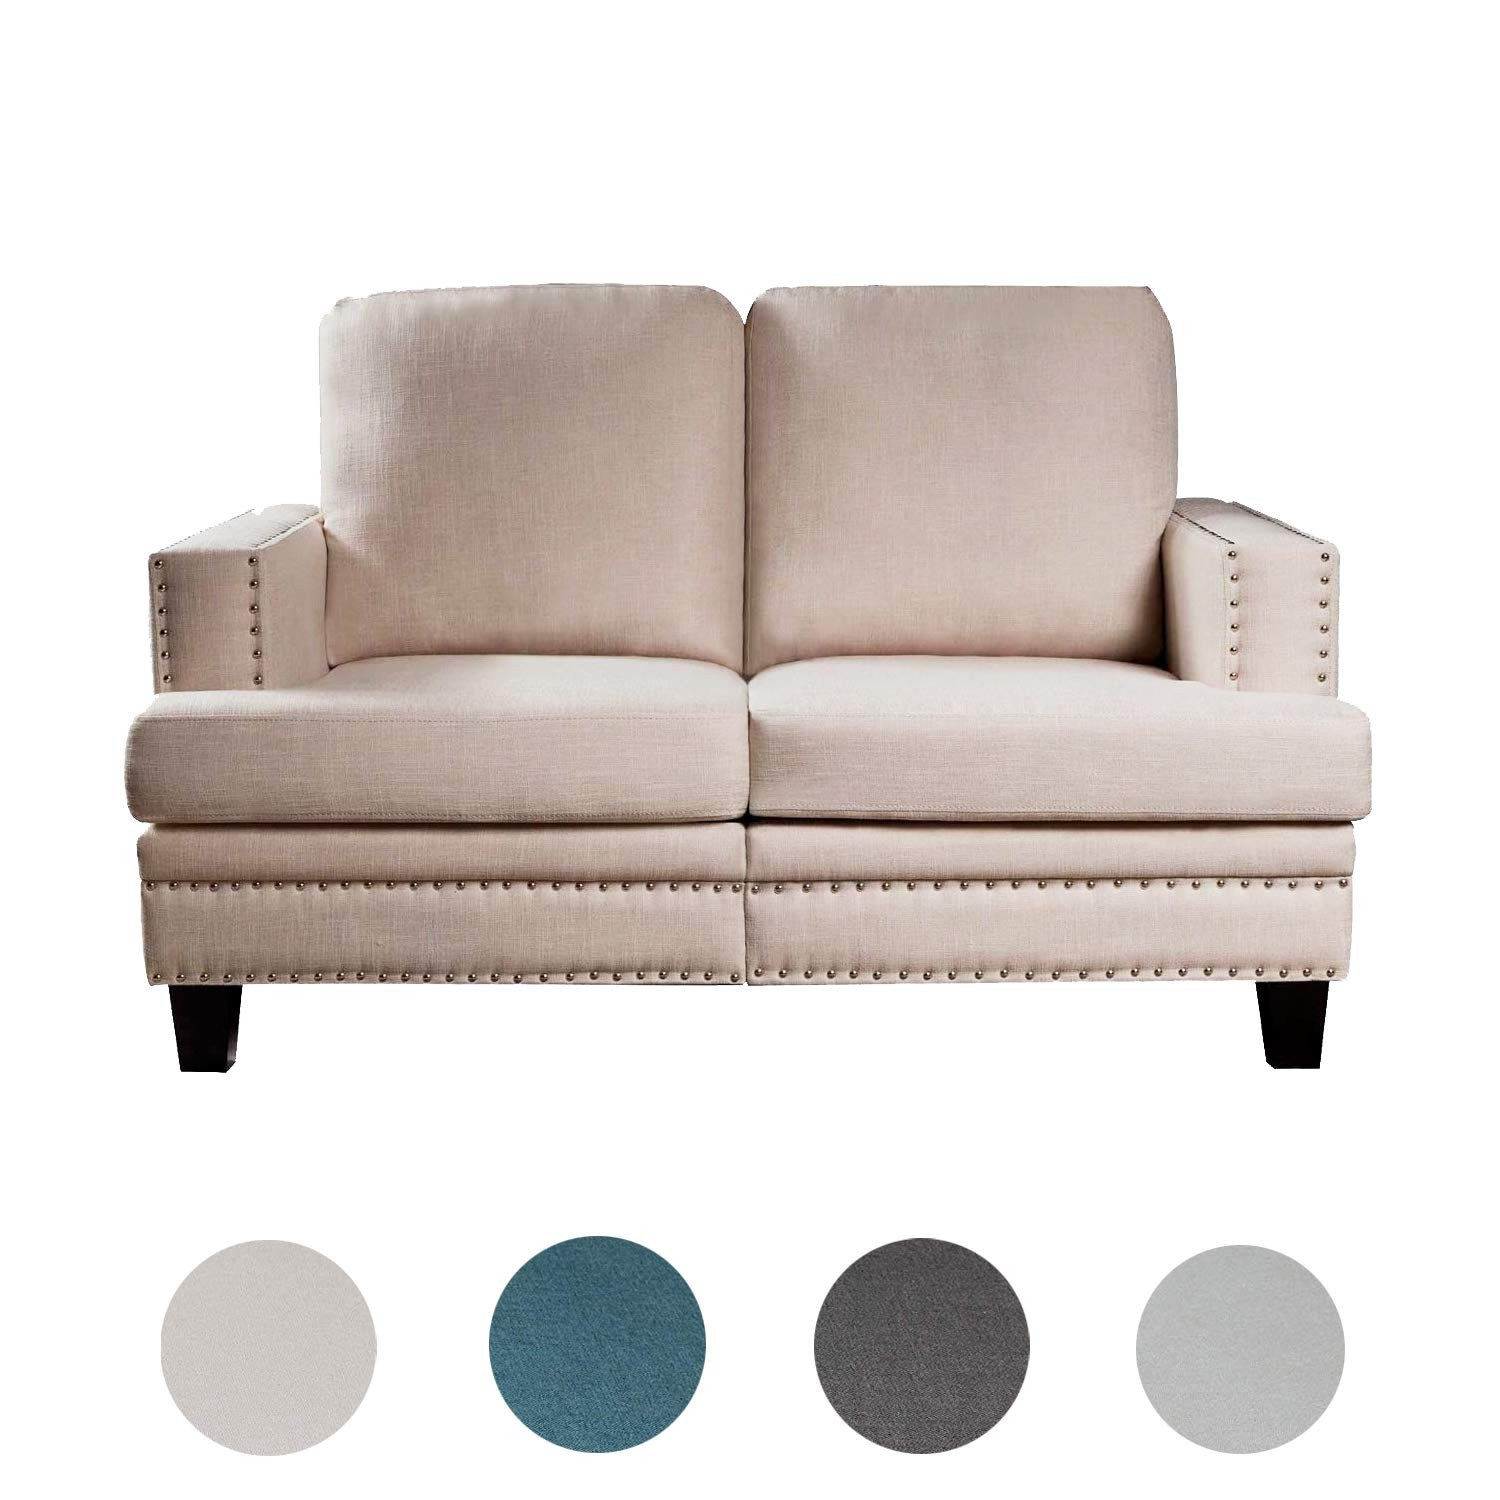 Small Comfy Chair for Bedroom Elegant Amazon top Space Loveseat sofa Modern Upholstered Couch